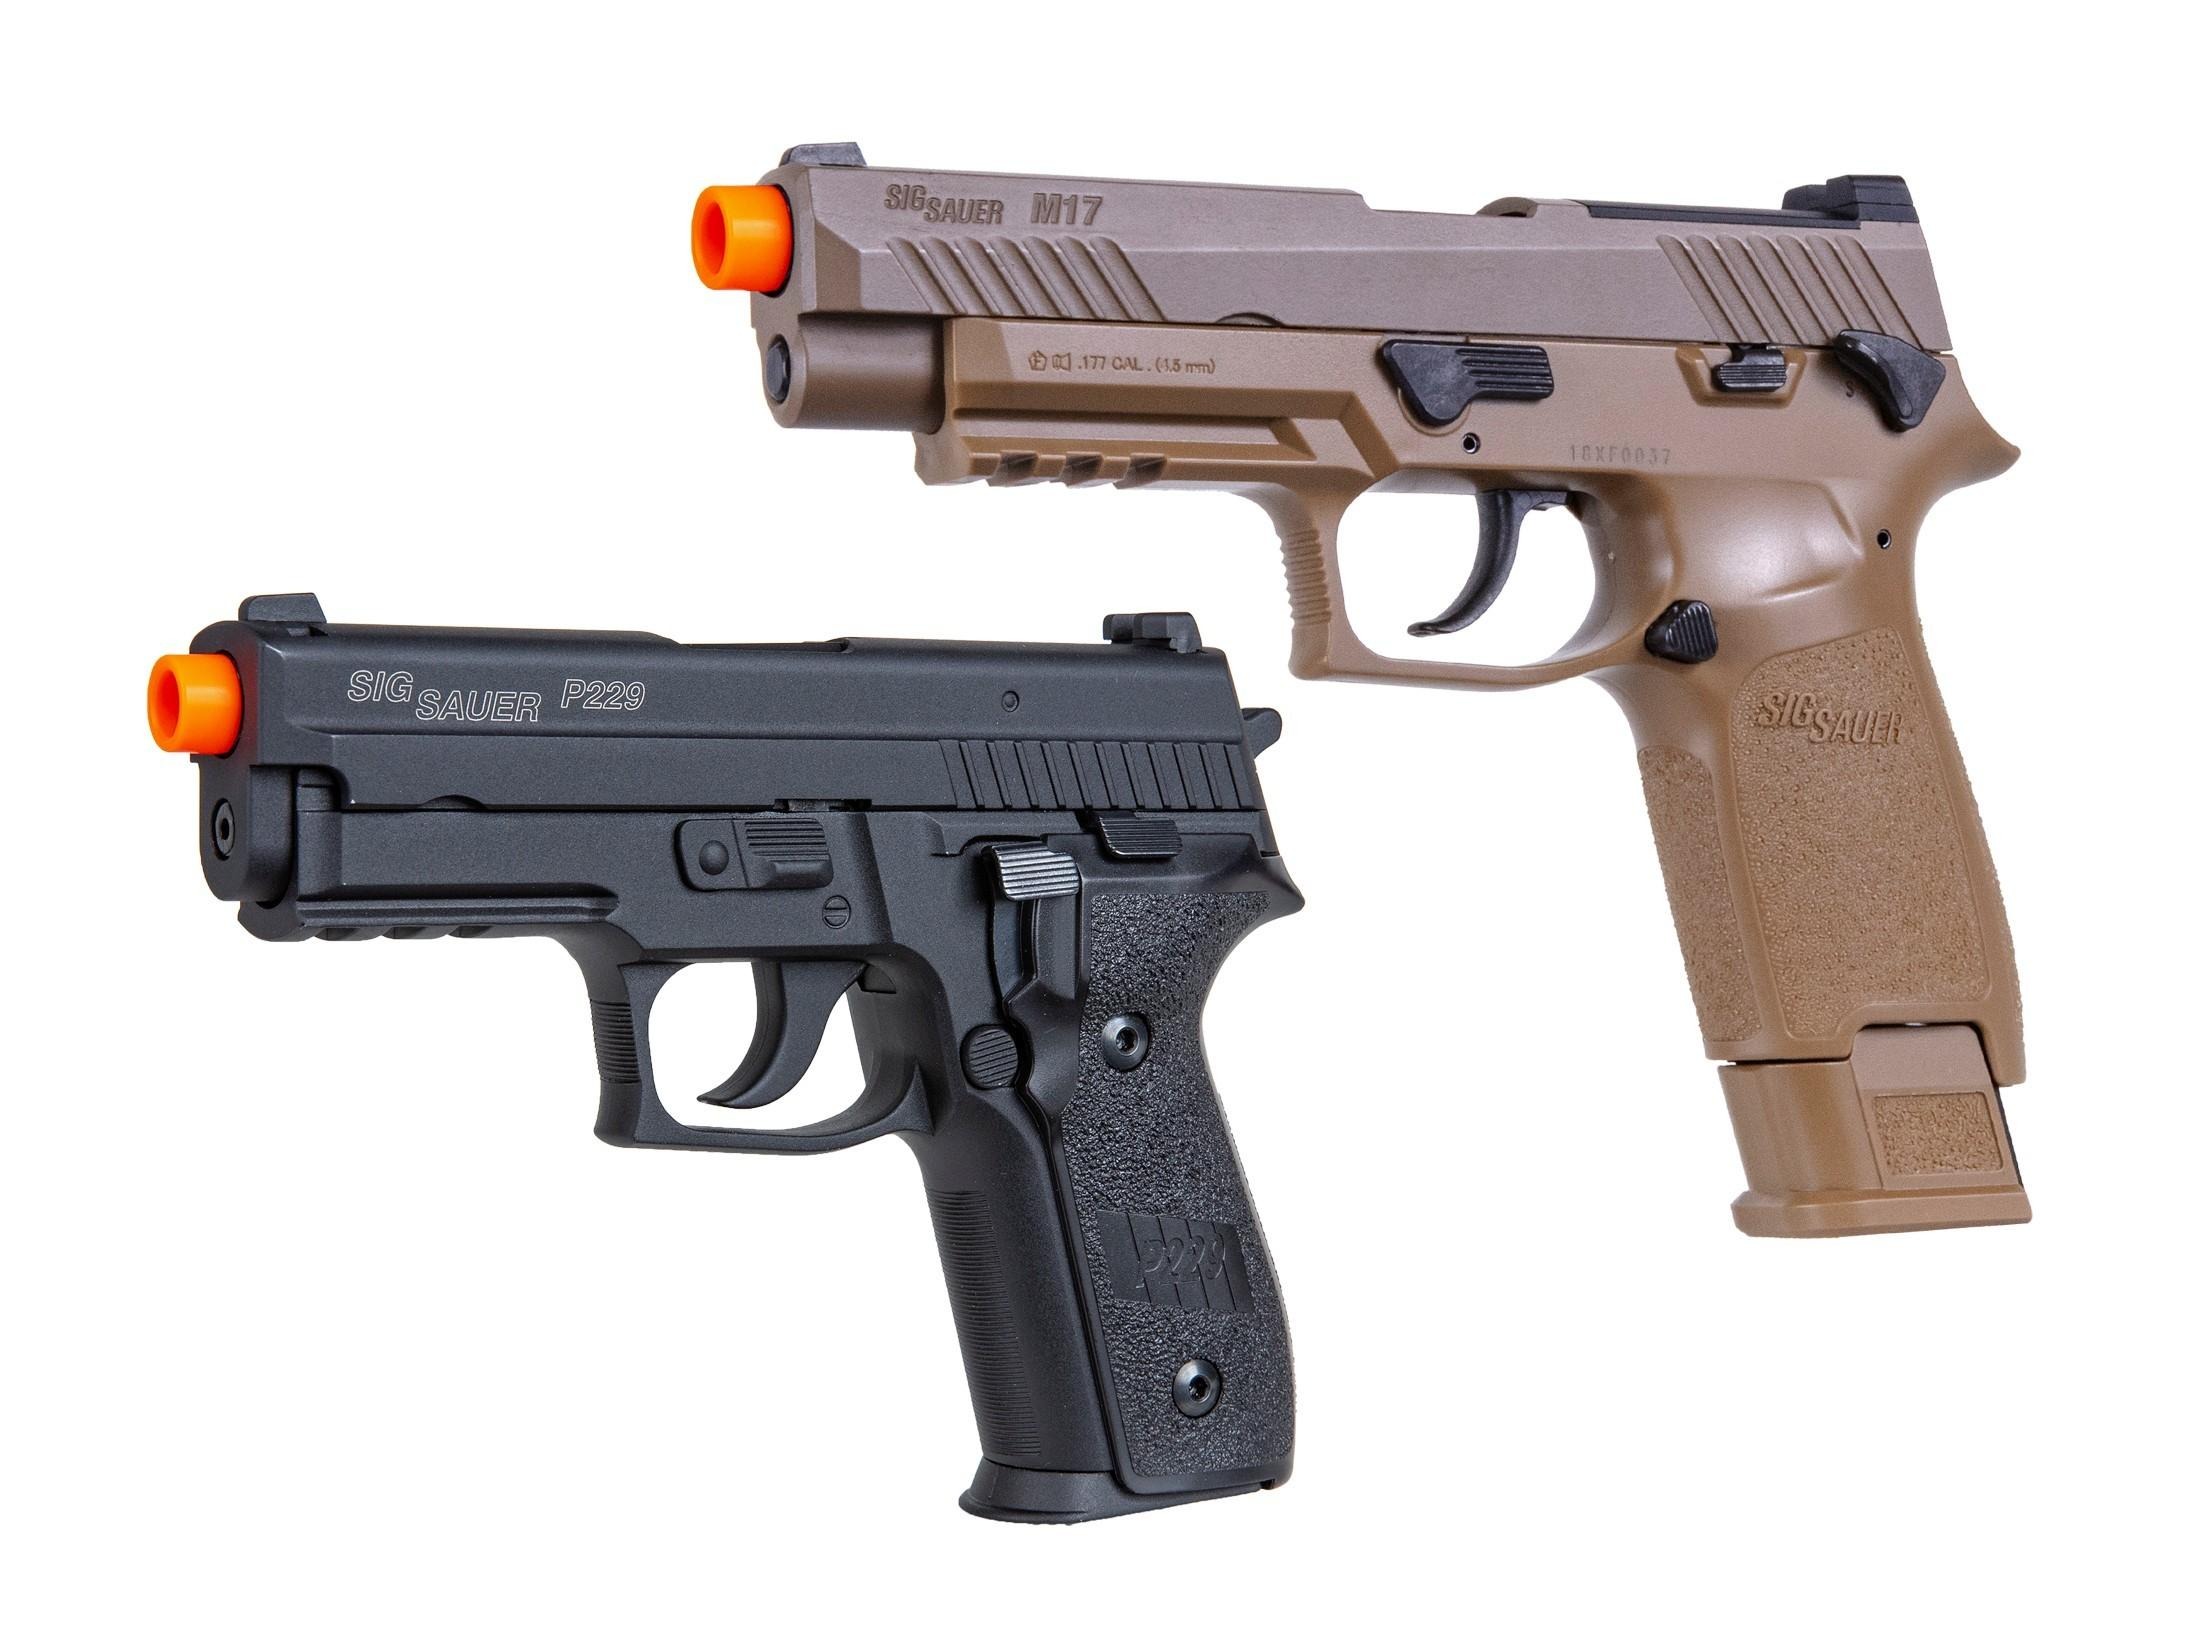 New SIG AIR ProForce Airsoft Guns Offer Realistic, Safe Training